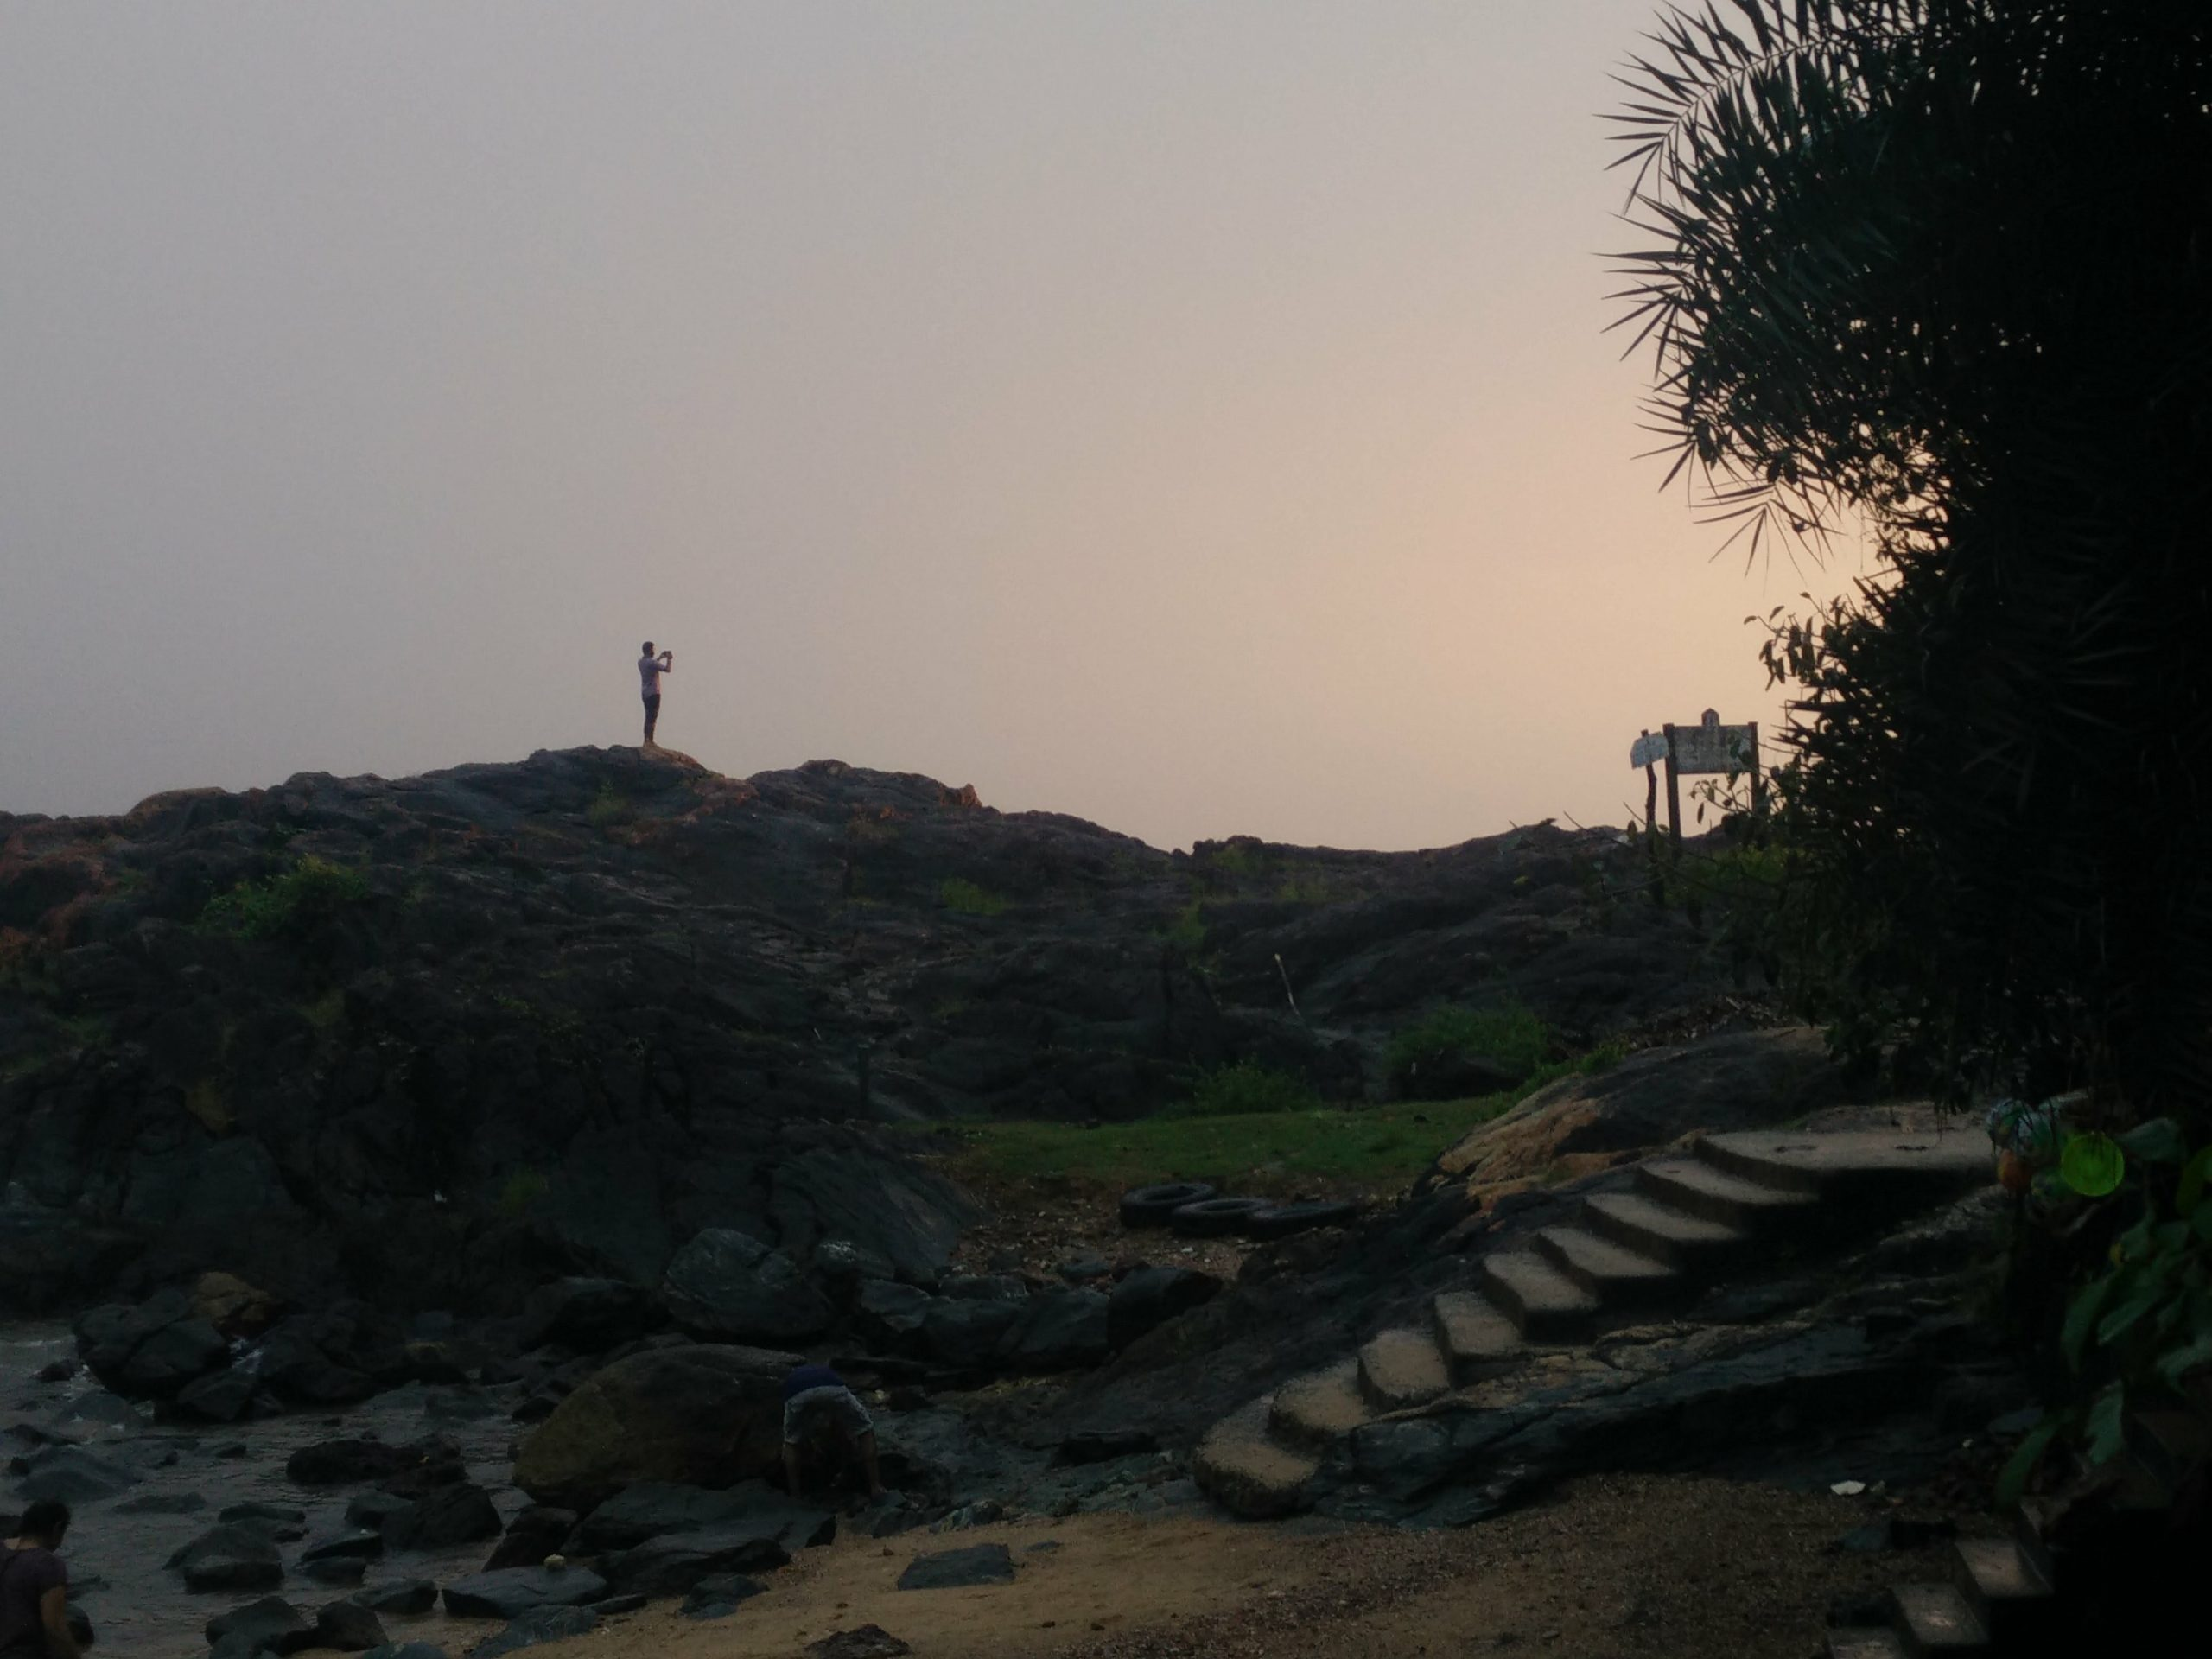 An evening at Om beach, Gokarna